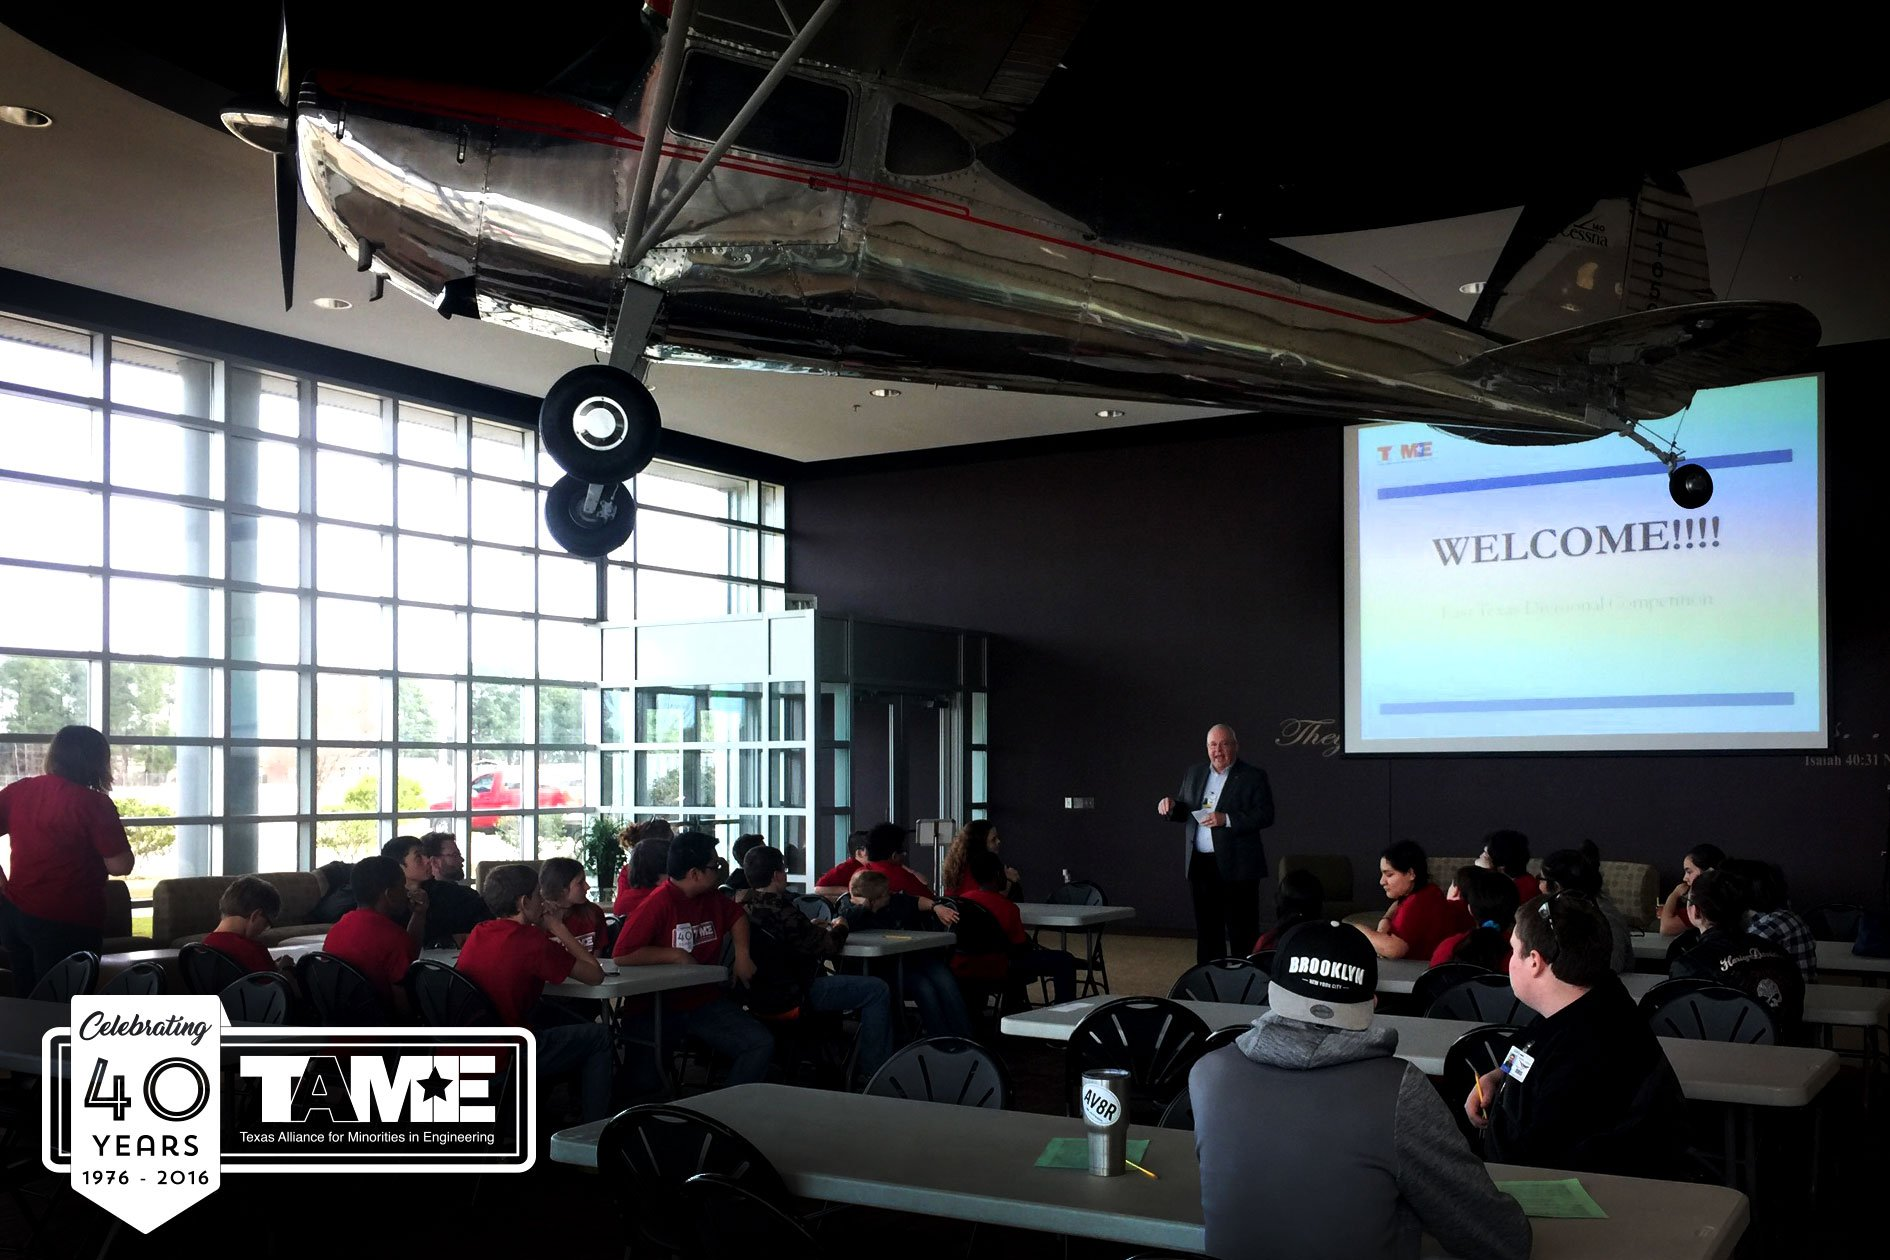 The 2017 TAME East Texas STEM Competition was hosted at the Abbot Aviation Center of LeTourneau University at the East Texas Regional Airport on Saturday January 27, 2017. The event, held free of cost to participants, brought together student competitors (grades 6-12) from across the region.